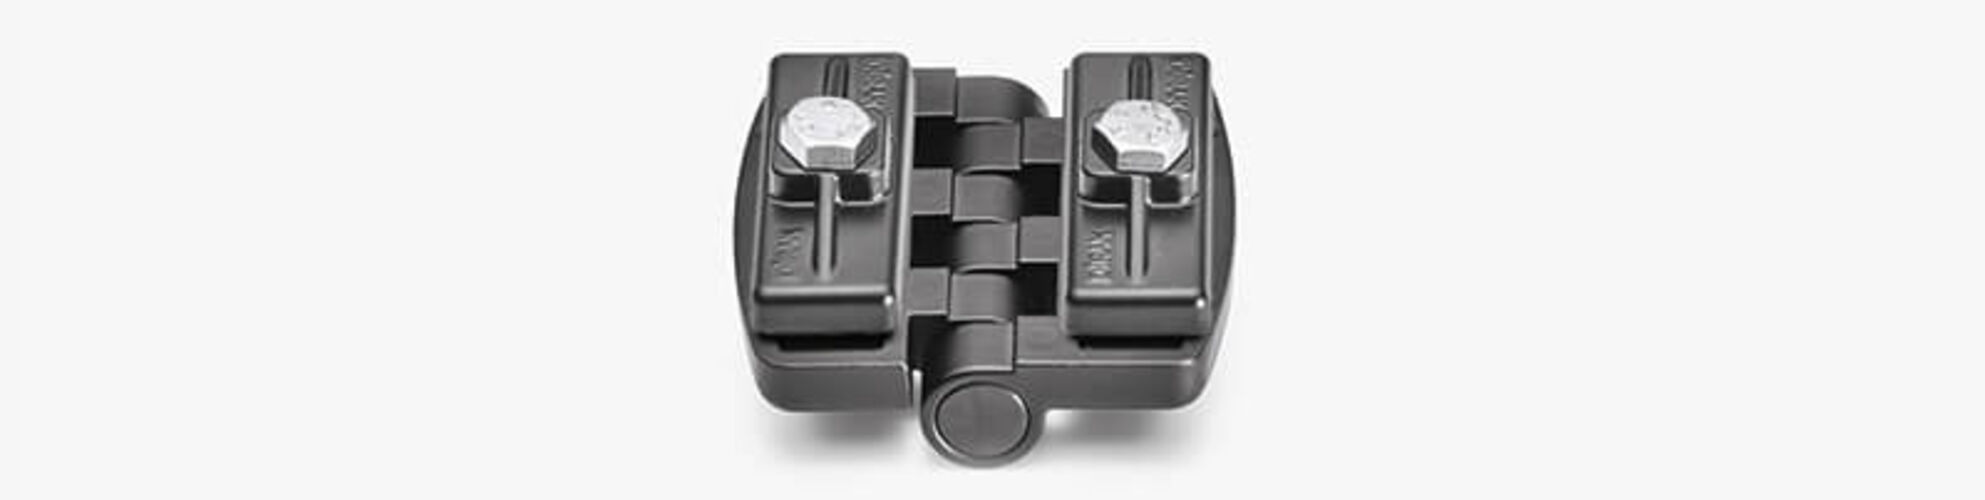 The stepped mounting surface on the back of each hinge half allows for easy alignment in the cutout and the gasketed fastening brackets can be tightened with a single screw, allowing for easy hinge positioning